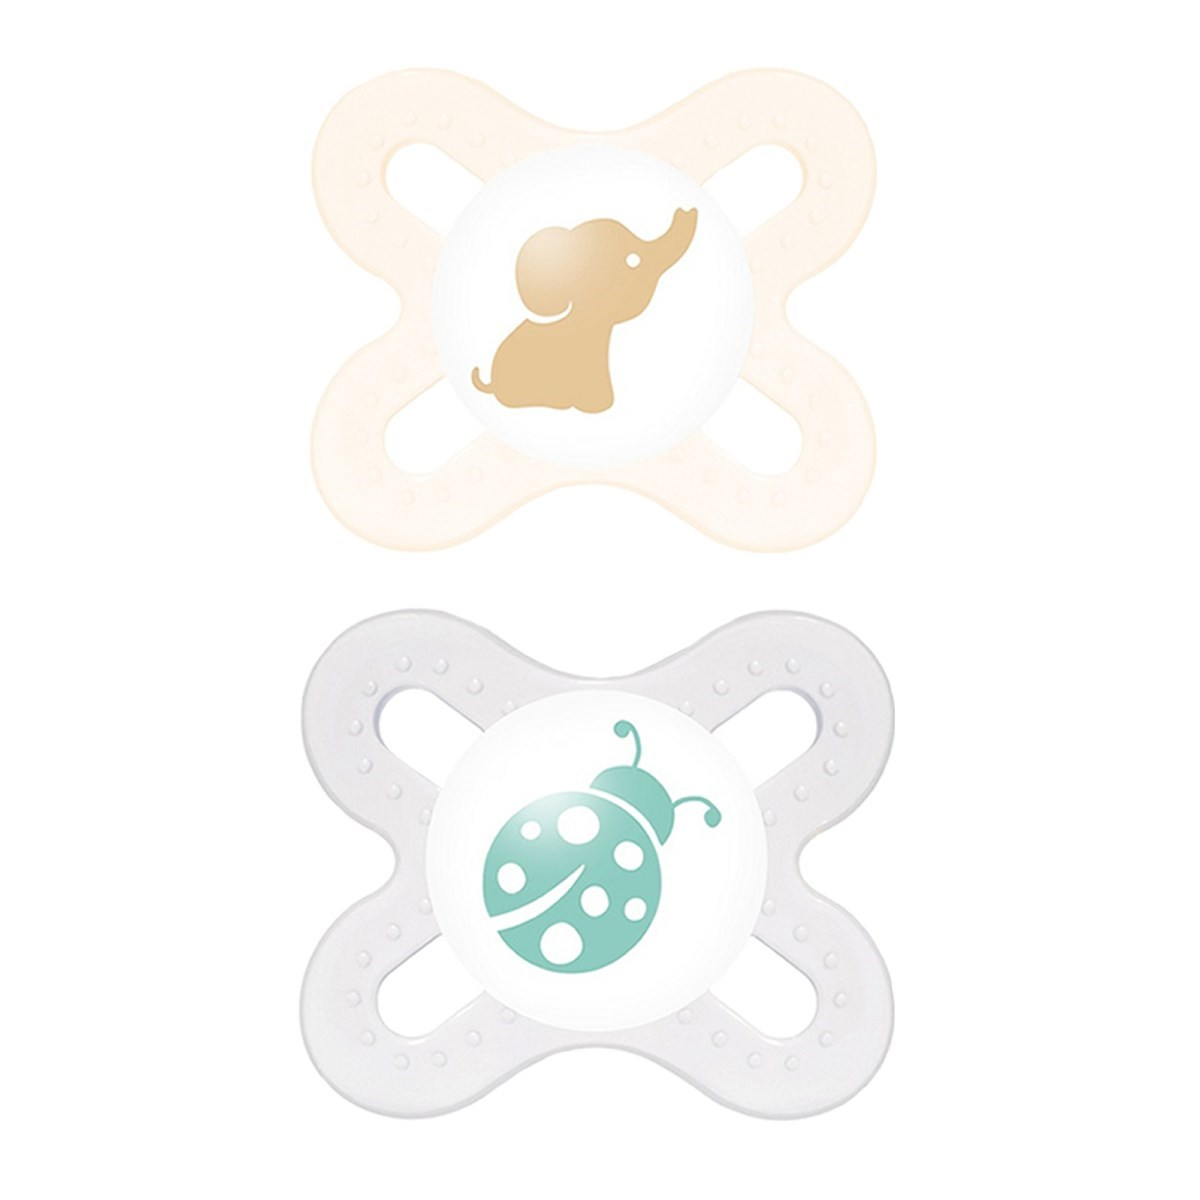 MAM Start Soother Twin Pack (0-2 months)